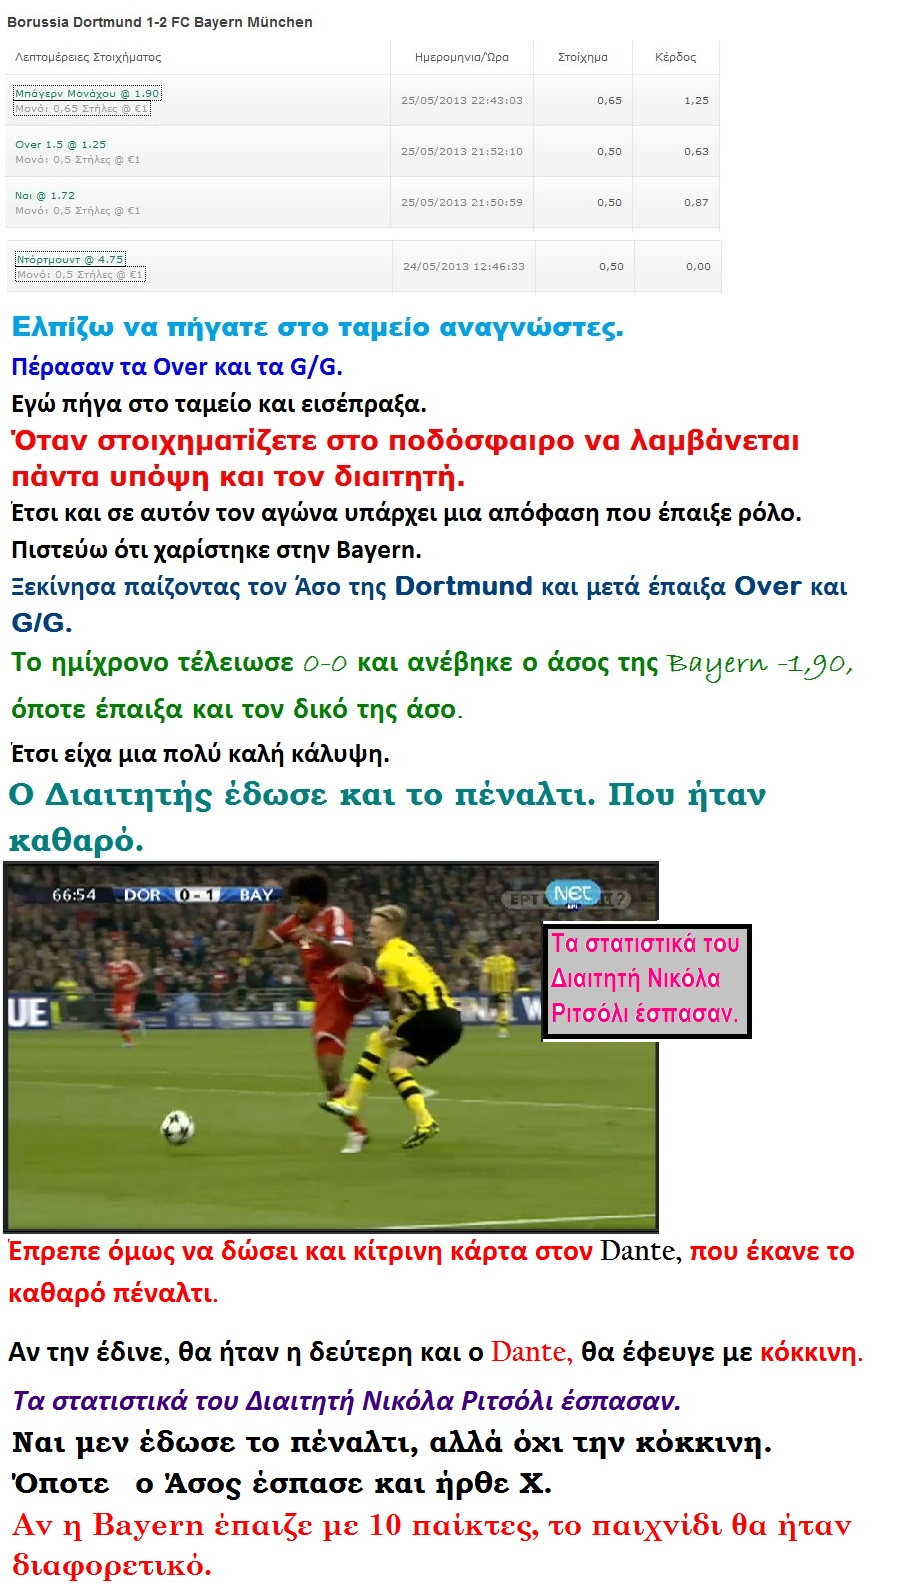 FOOTBALL CHAMPIONS LEAGUE DORTMUND vs BAYERN DANTE PENALTI 01 01 260513